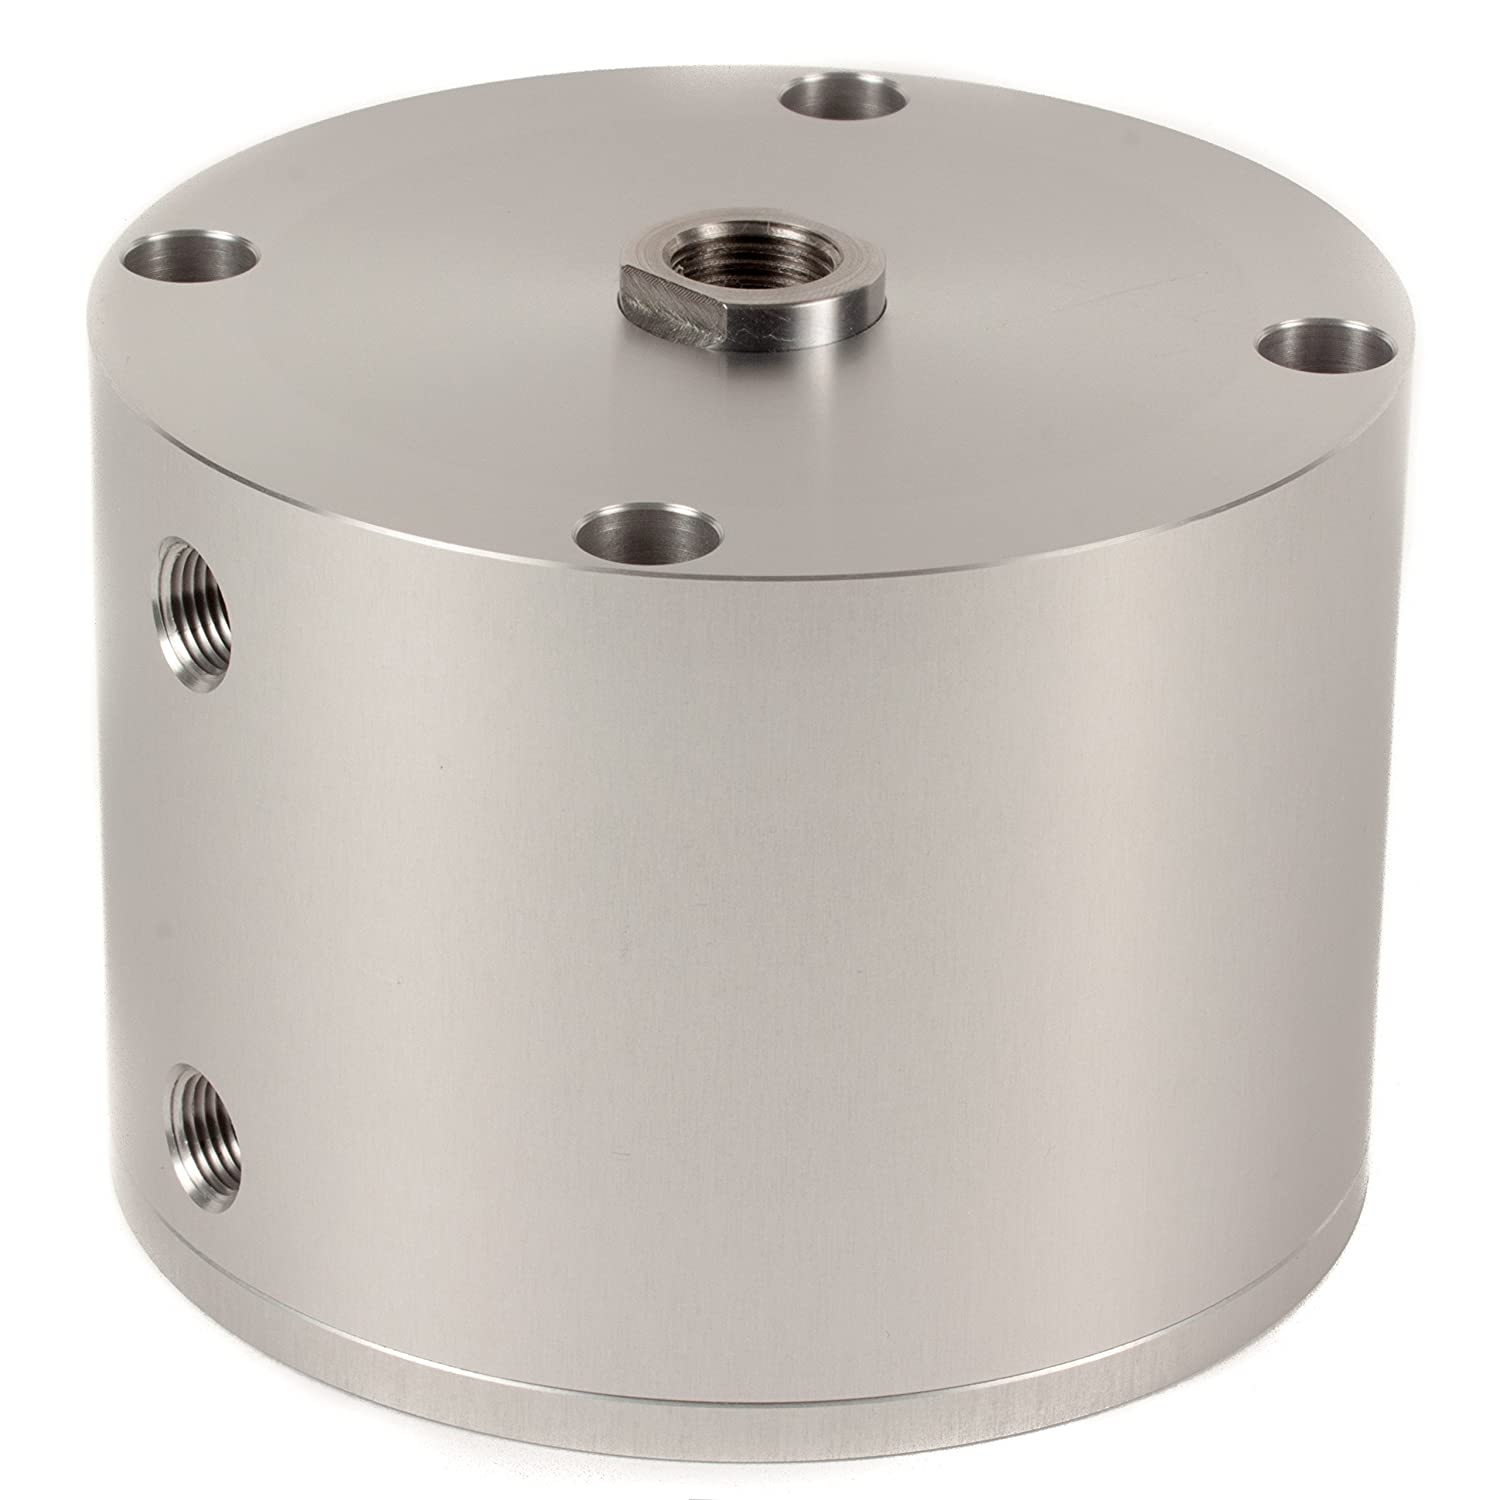 Fabco-Air D-521-X Original Pancake Cylinder, Double Acting, Maximum Pressure of 250 PSI, 2-1/2' Bore Diameter x 1-1/2' Stroke 2-1/2 Bore Diameter x 1-1/2 Stroke FAB   D-521-X